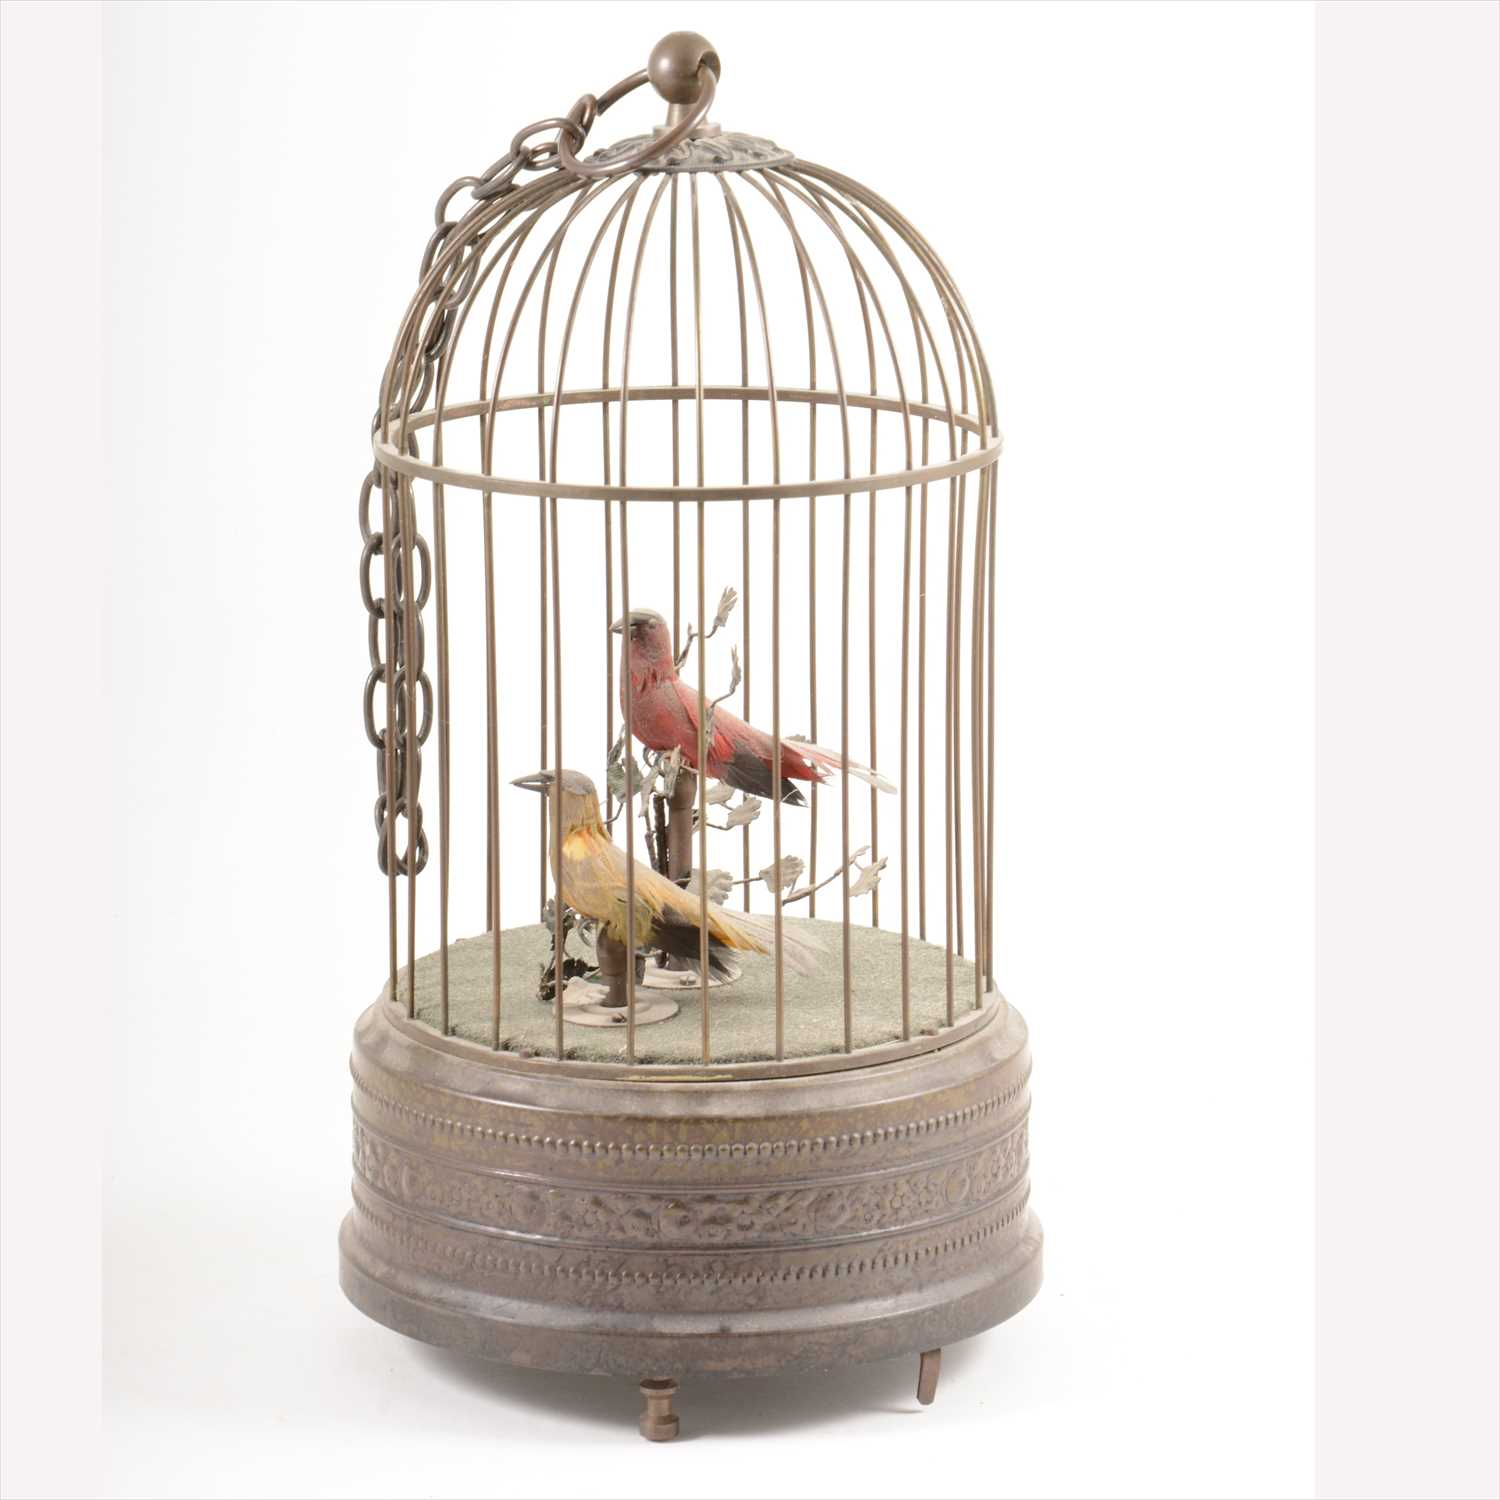 Lot 541-Singing birds in a cage automaton, late 20th century